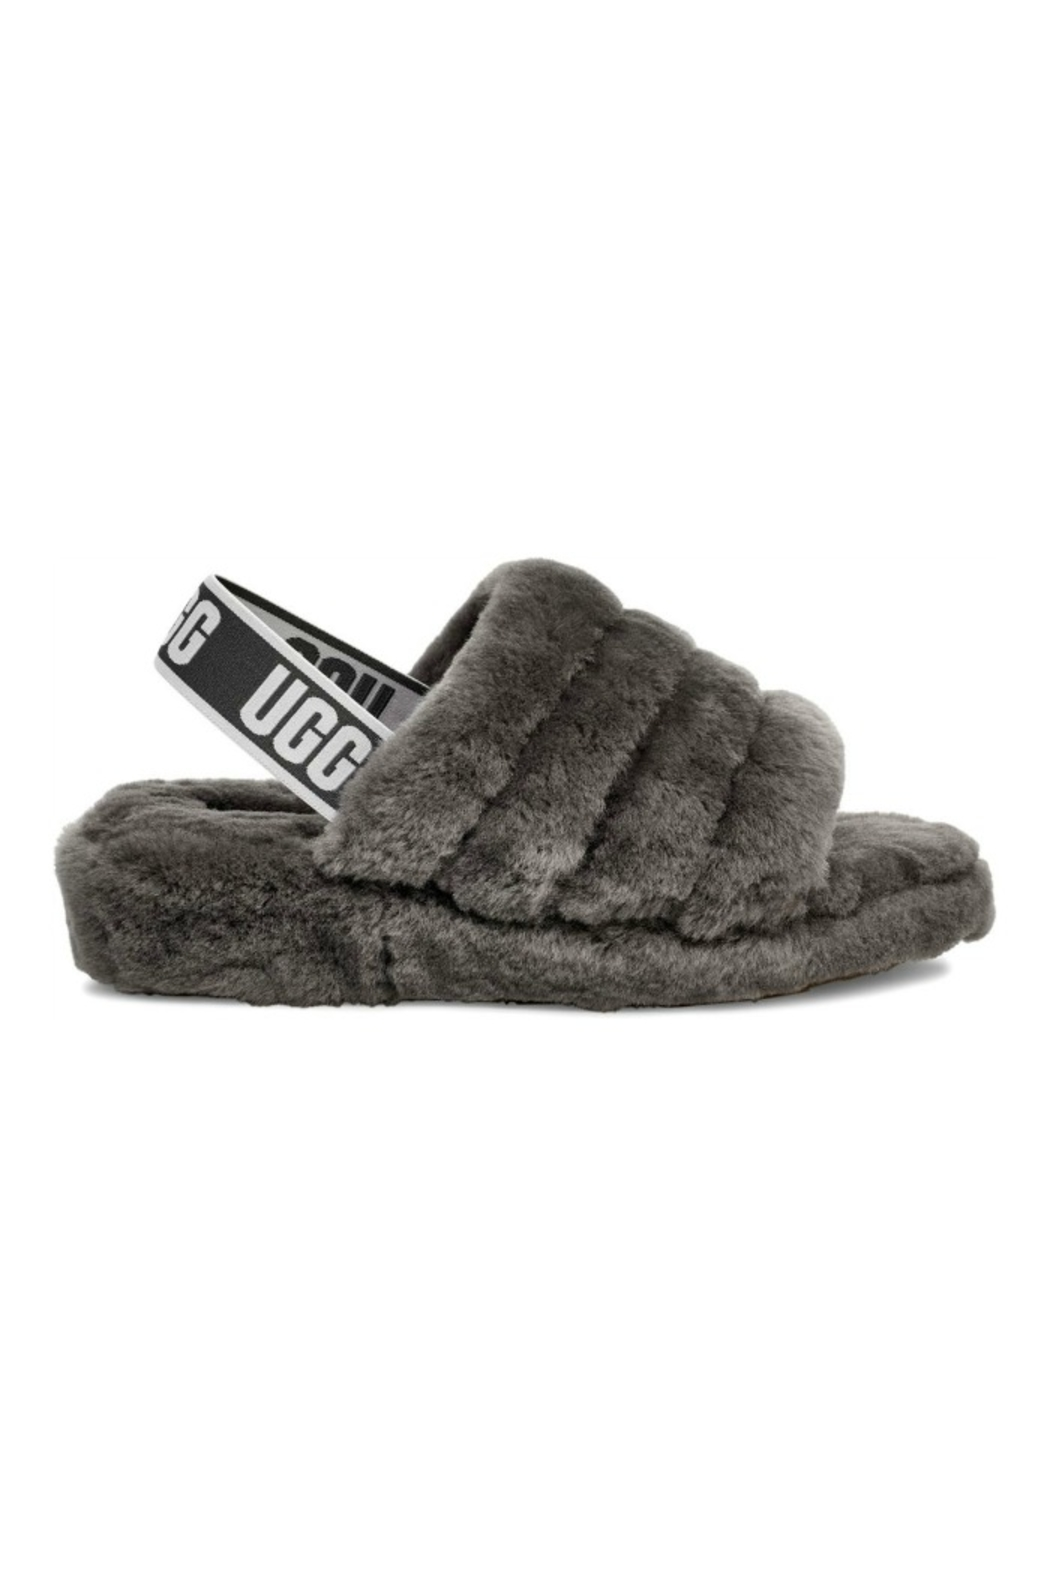 3f9b2cc9fee Ugg Women's Fluff Yeah Slide from New Jersey by Suburban Shoes ...